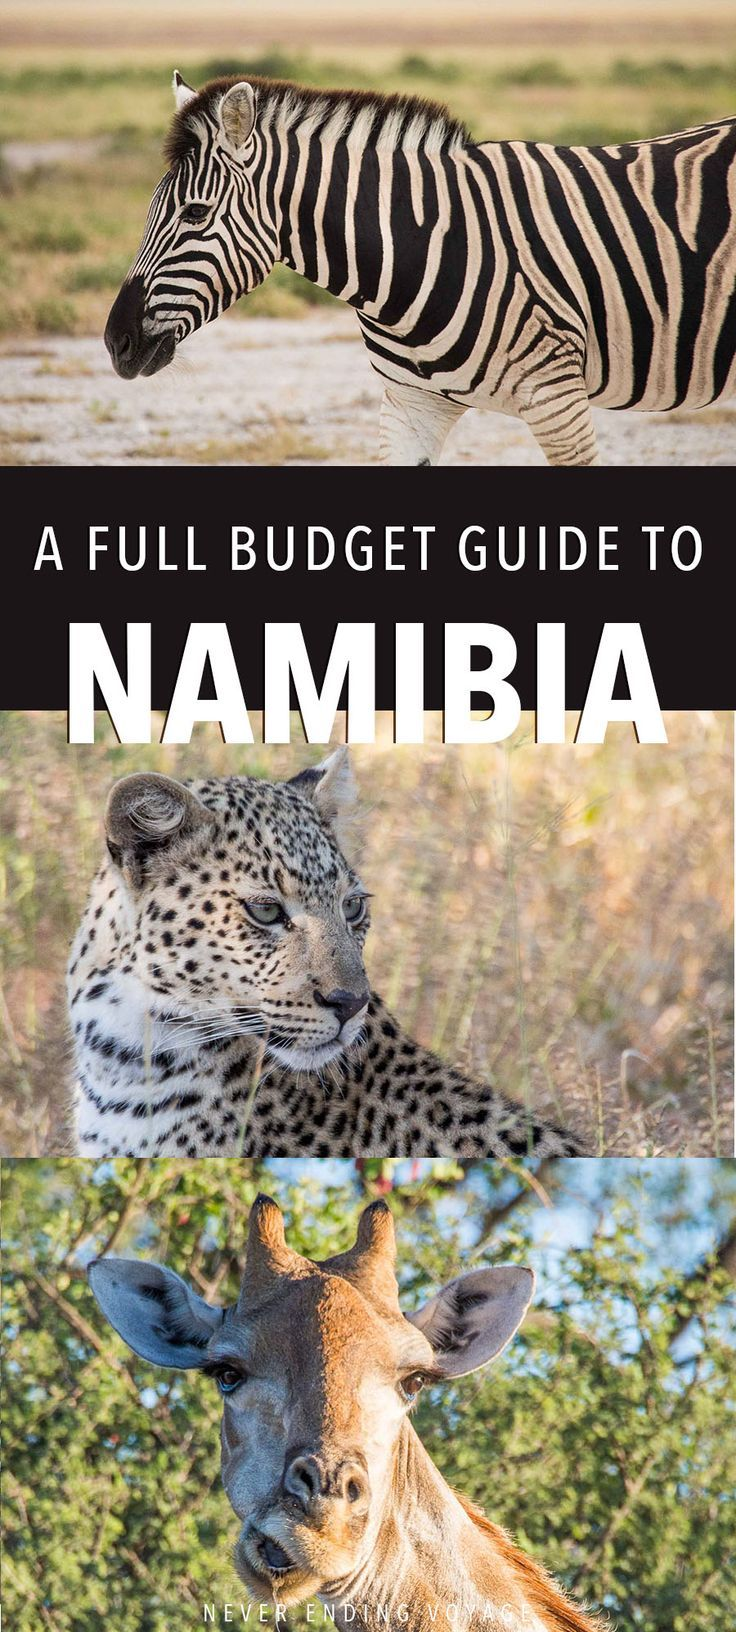 We're breaking down our budget for 2 weeks in Namibia! It's definitely NOT a cheap country, but here are some ways we cut costs while enjoying all its gorgeous desert landscapes, safaris, and more. #namibiatravel #namibiadesert #africatravel